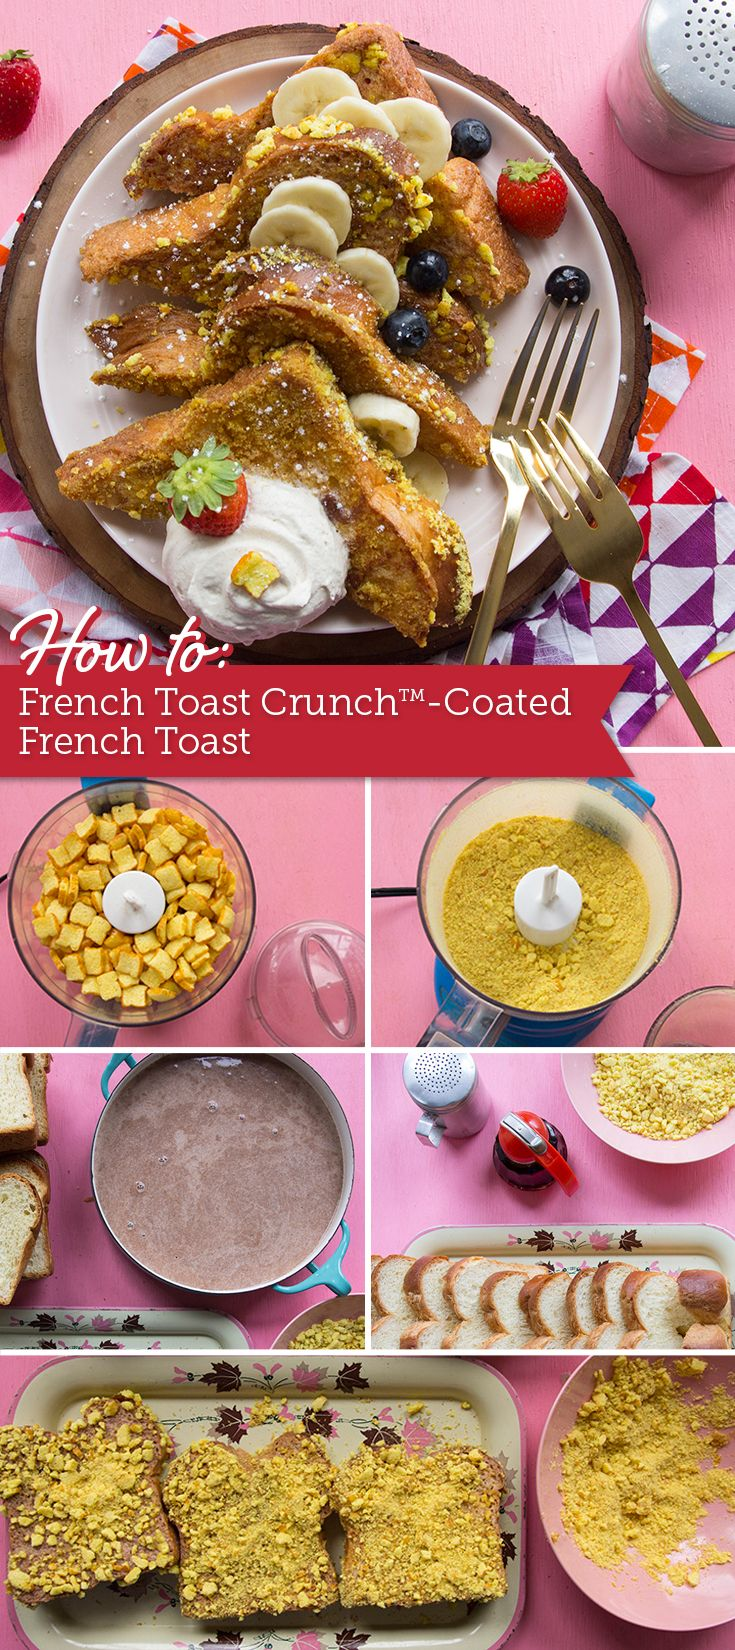 Double-down on irresistible French-toast flavors with this indulgent breakfast made with French Toast Crunch™ cereal.